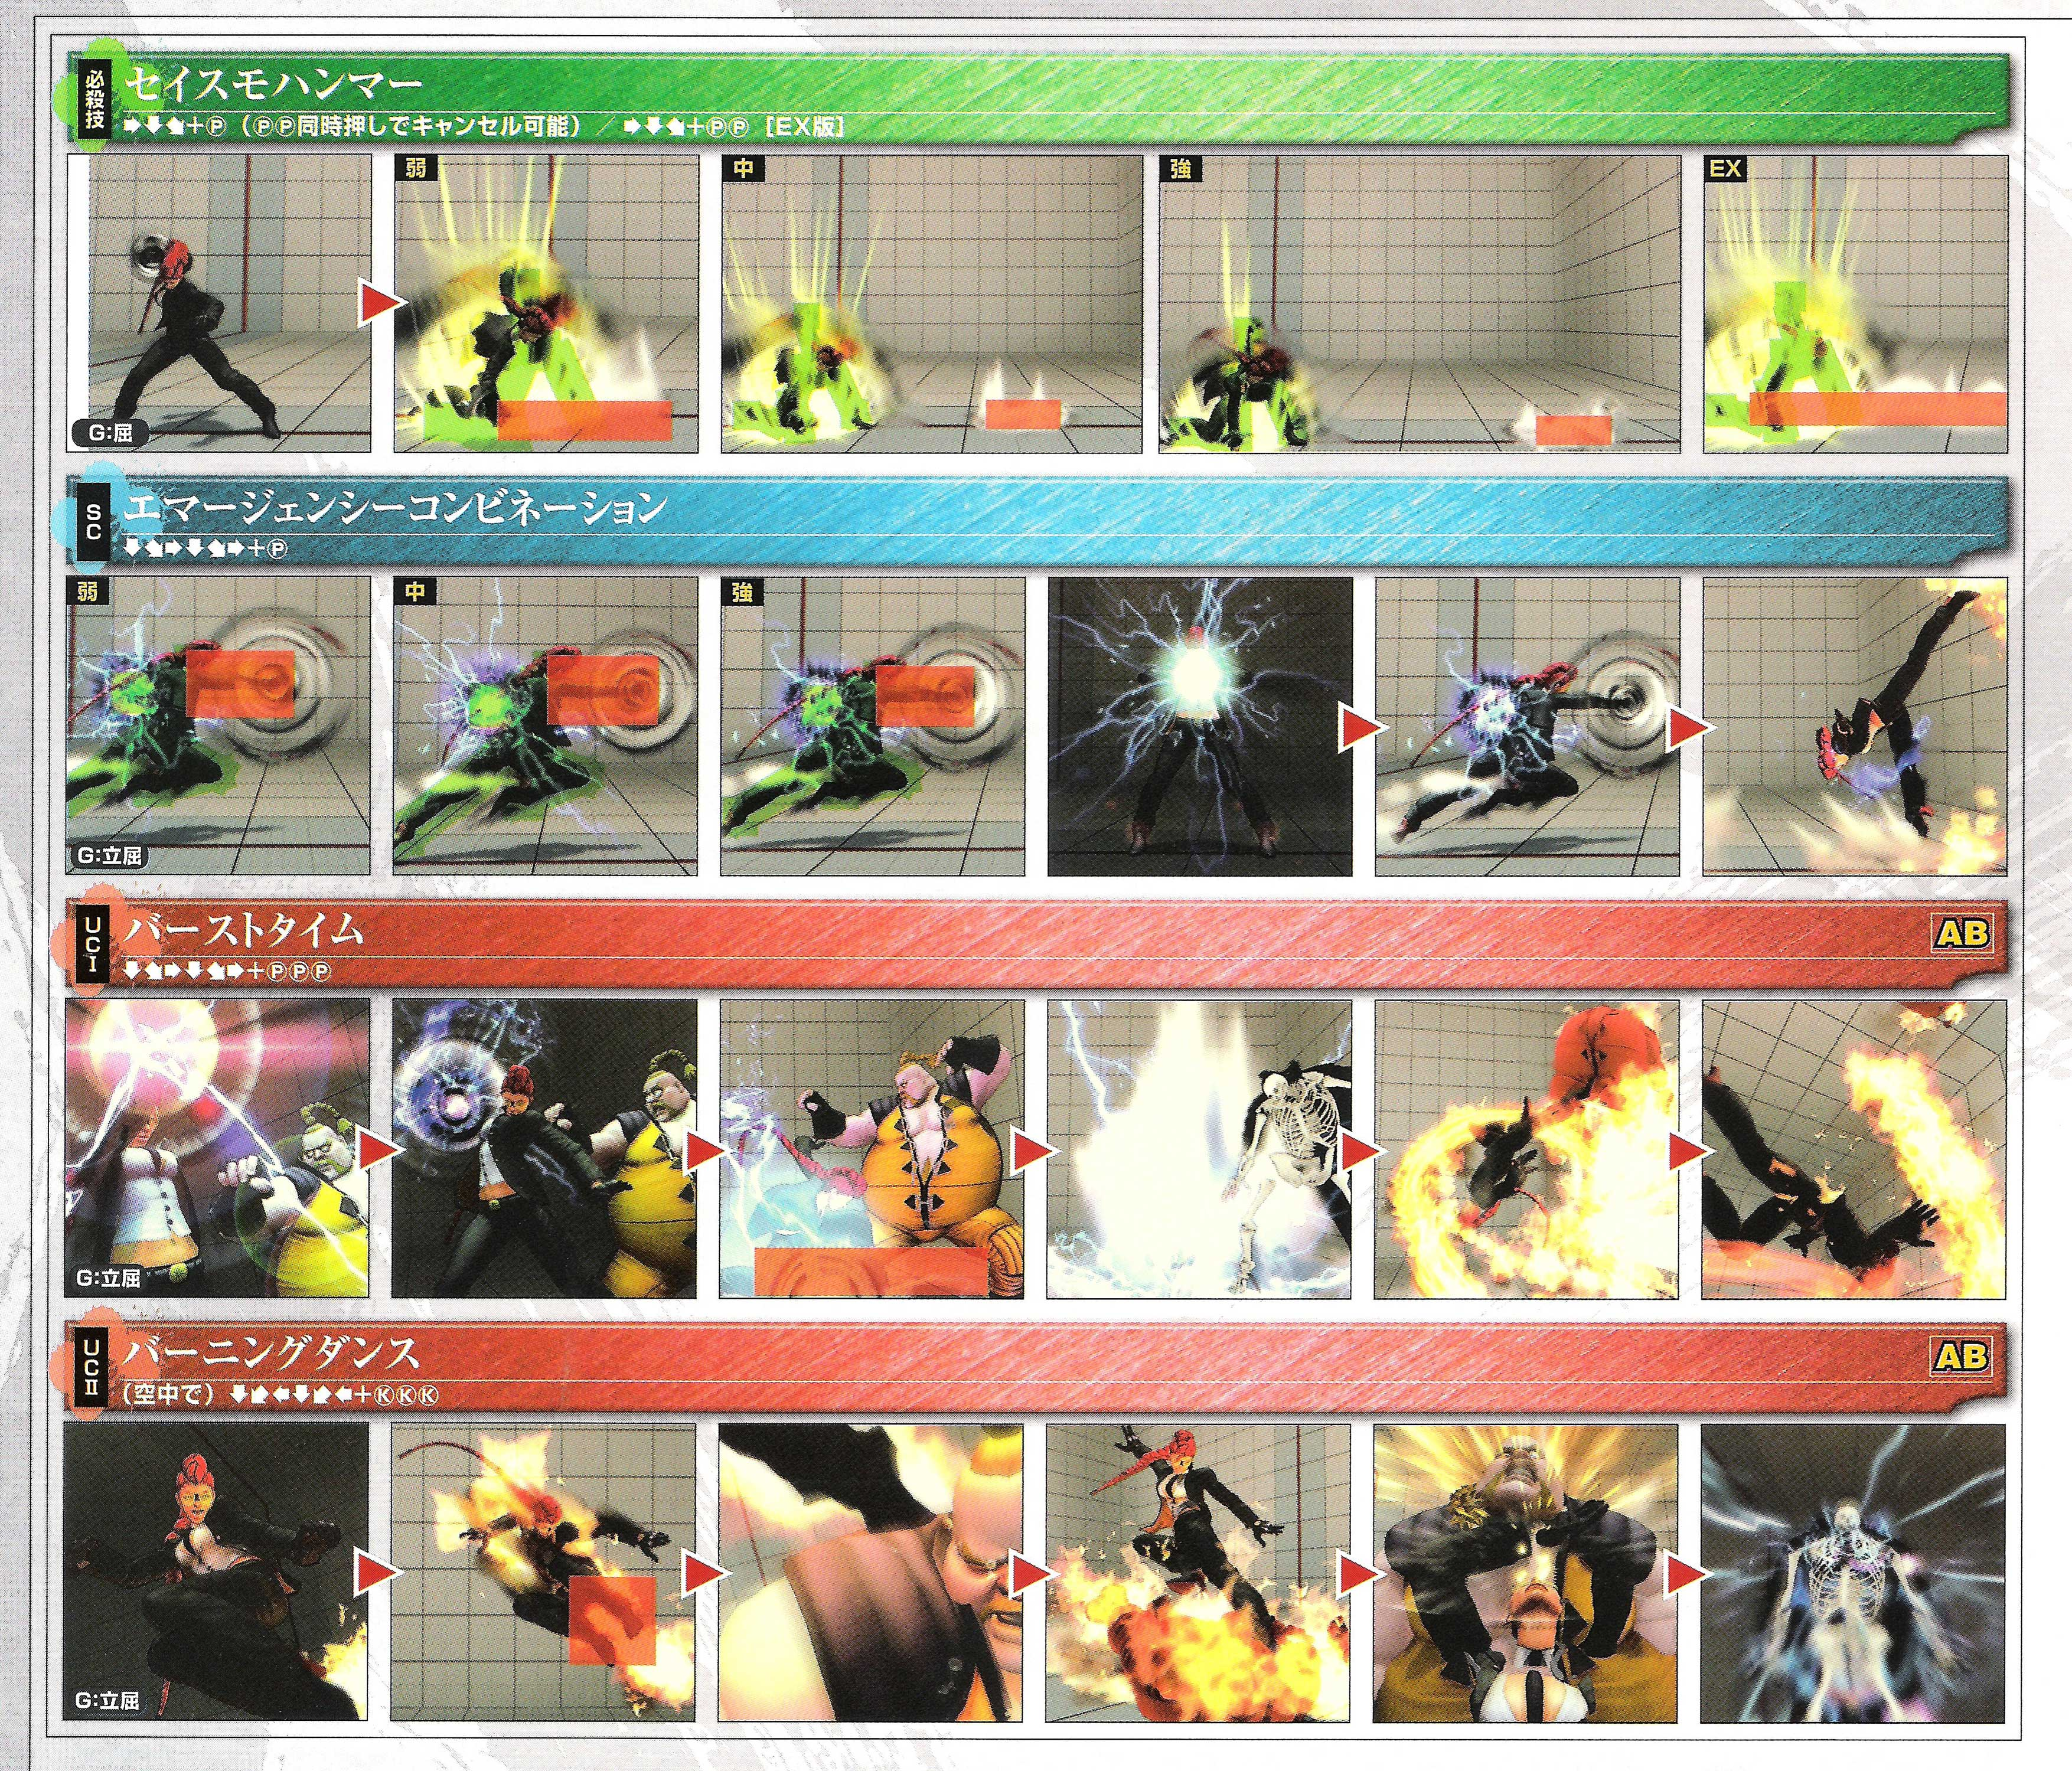 C. Viper's hit box information for Super Street Fighter 4 Arcade Edition image #3